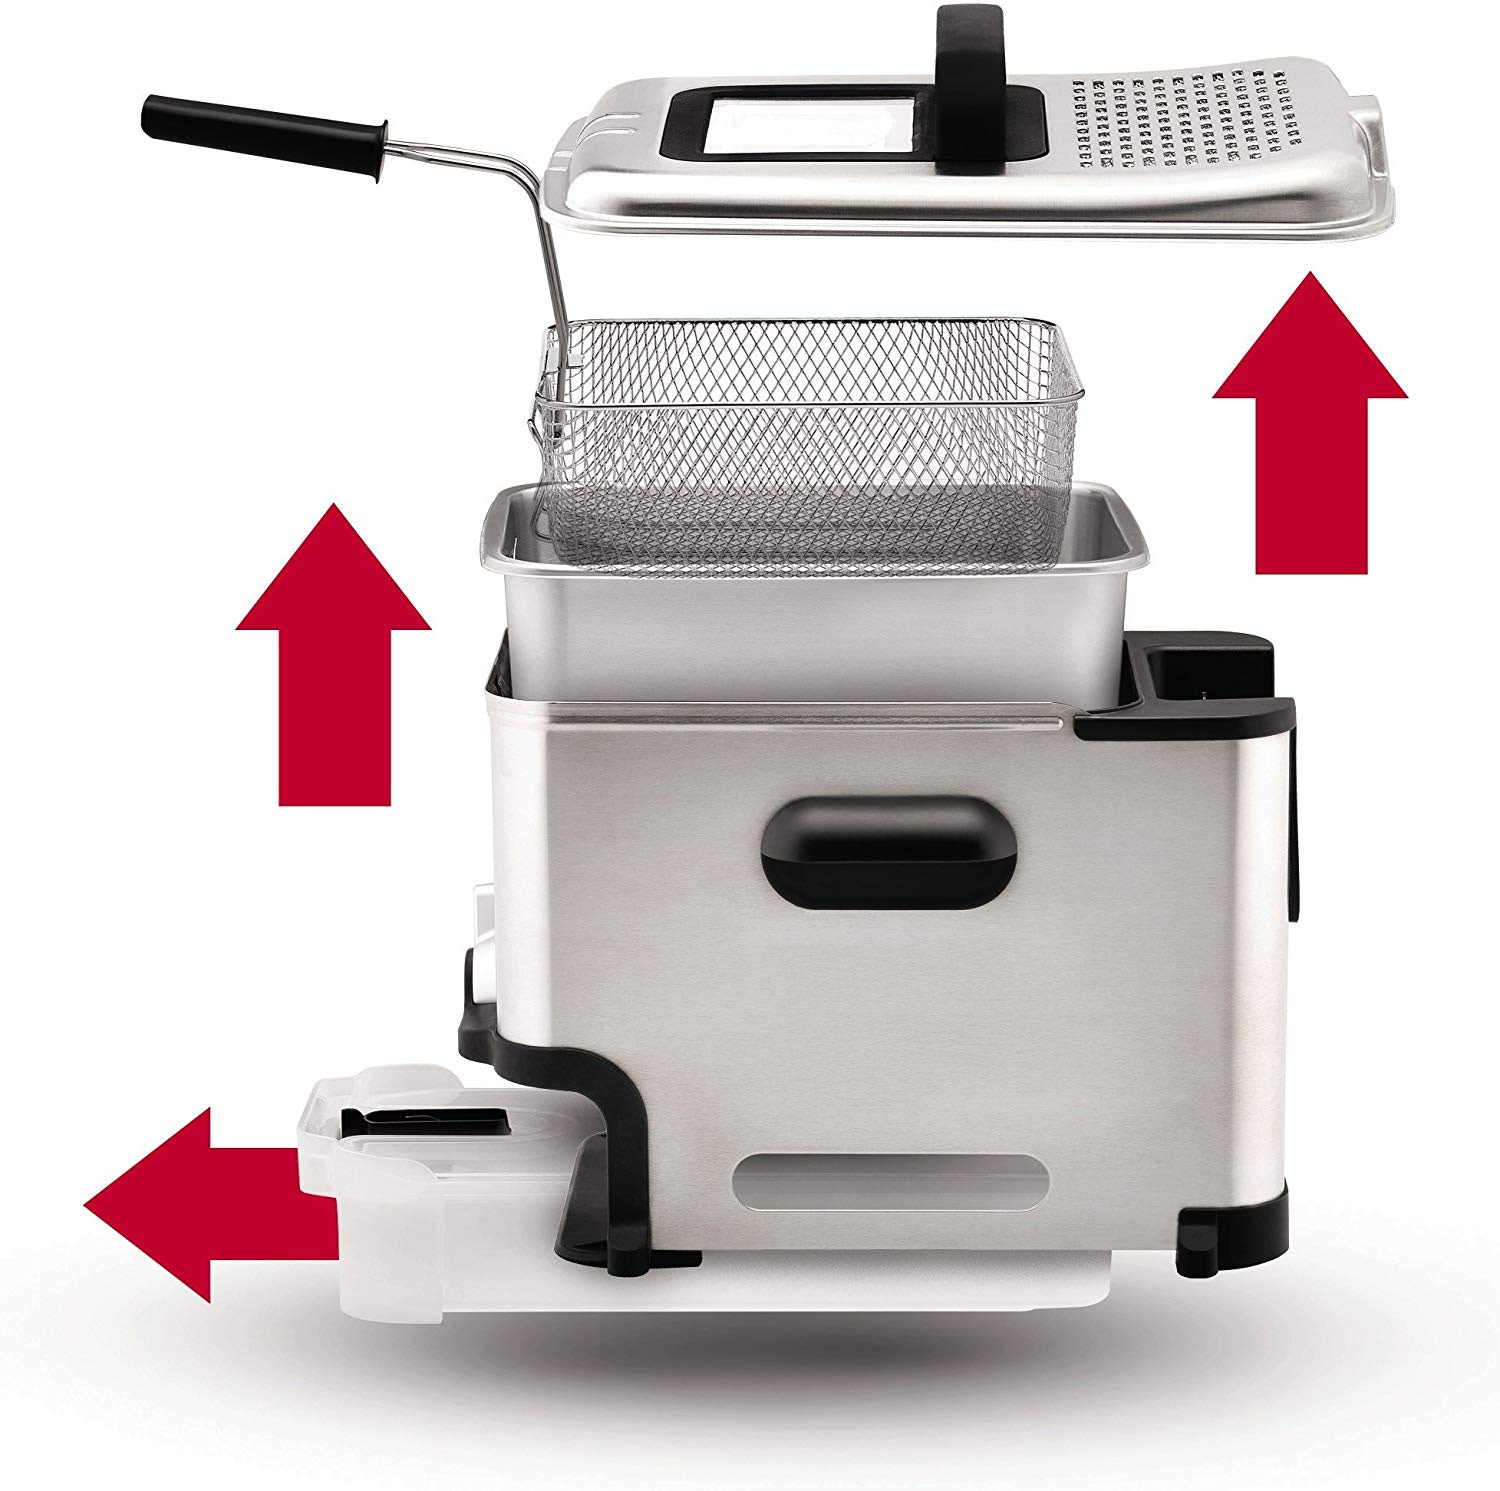 T-fal FR8000 How To Use